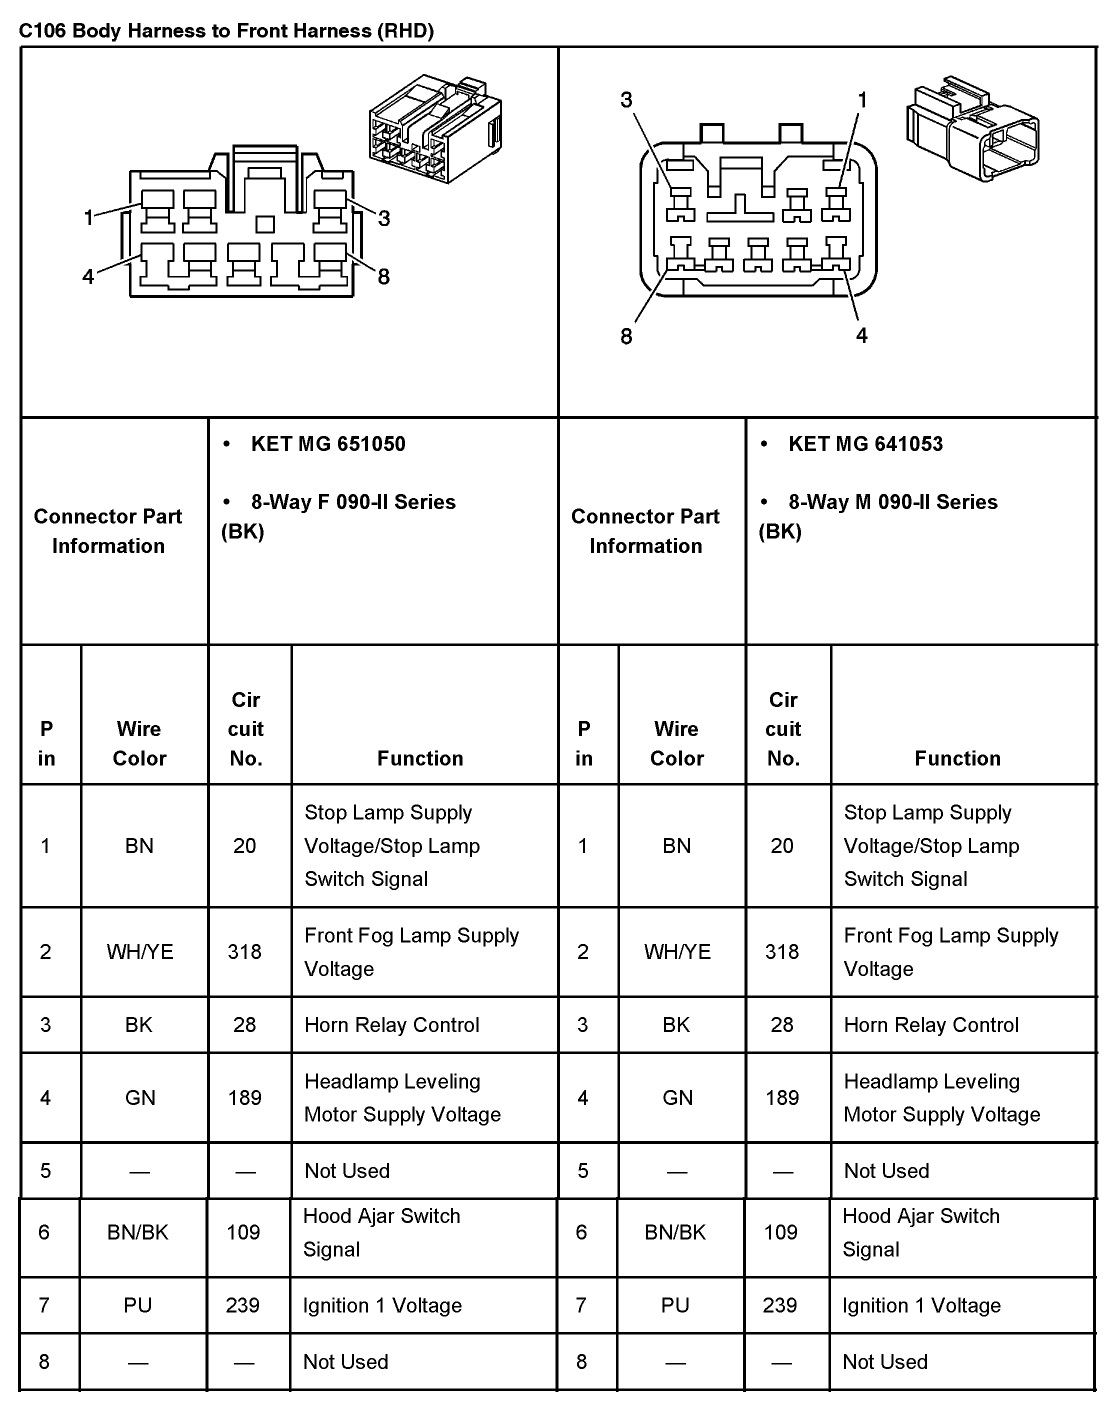 7331d1383704576 2005 aveo master connector list diagrams conn3 jpg 2008 chevy aveo fuse box diagram chevy aveo door lock diagram 2013 chevy cruze fuse box diagram at crackthecode.co